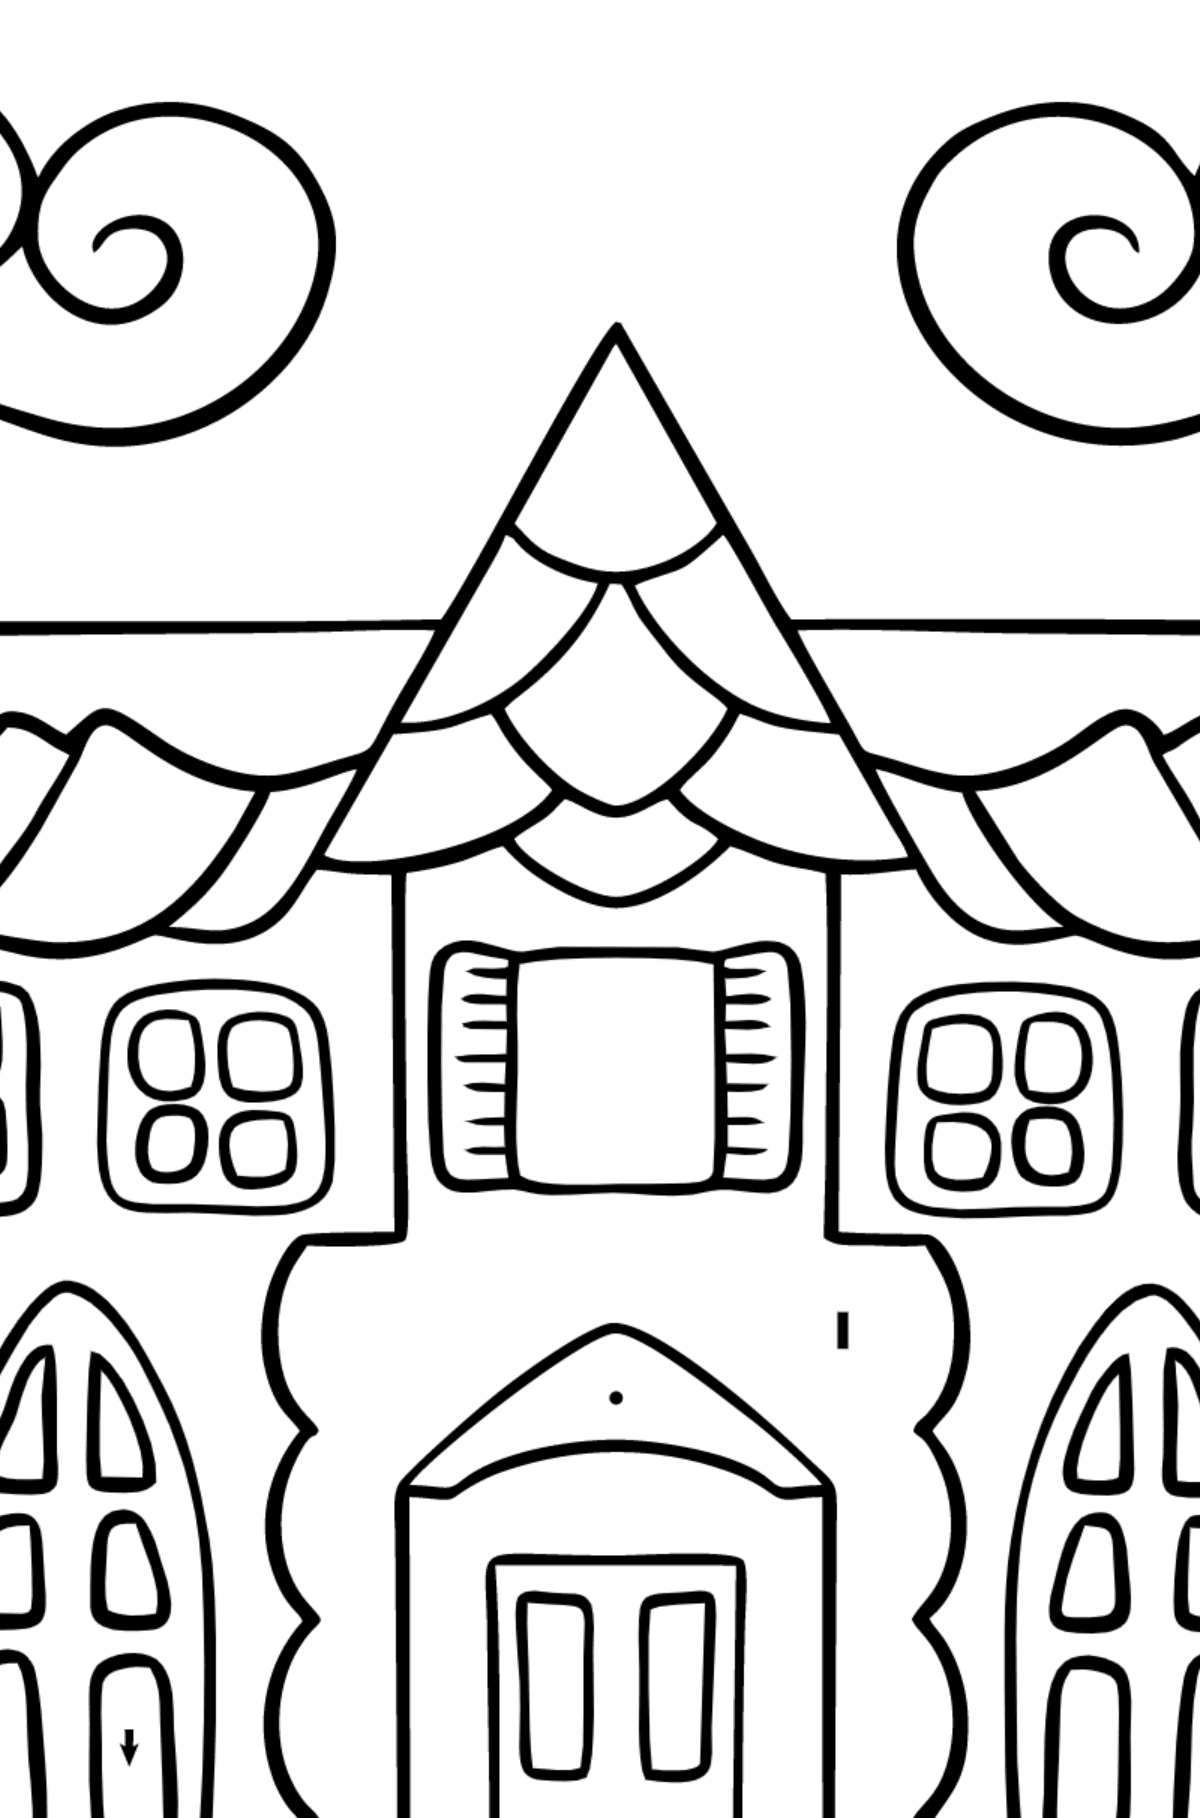 Simple Coloring Page - A House in an Enchanted Kingdom for Kids  - Color by Special Symbols